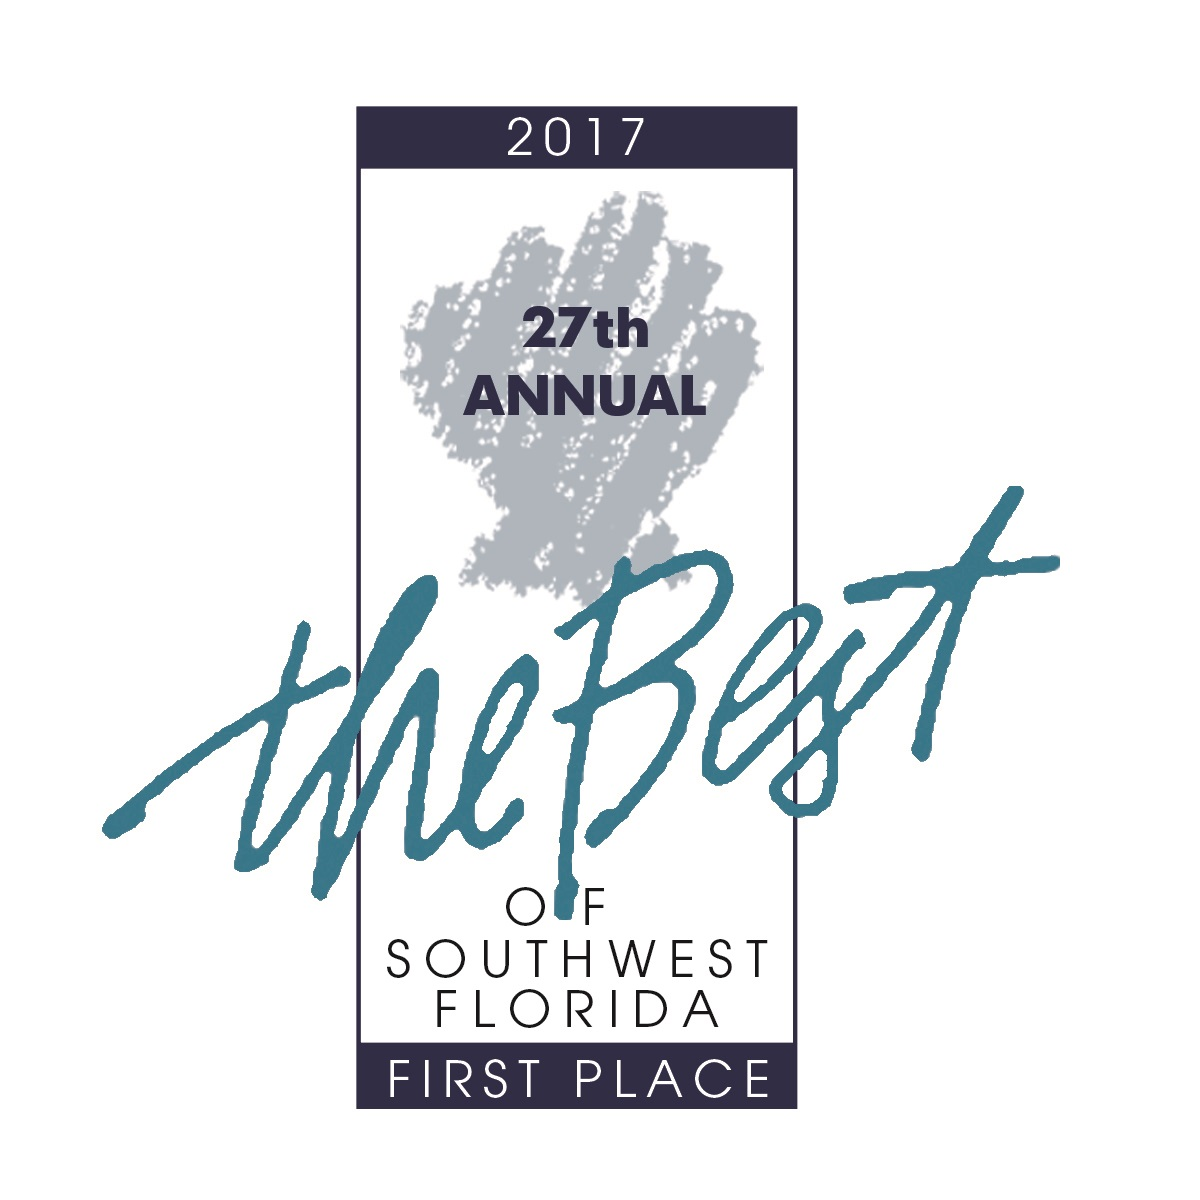 2017 LOGO FIRST PLACE 003